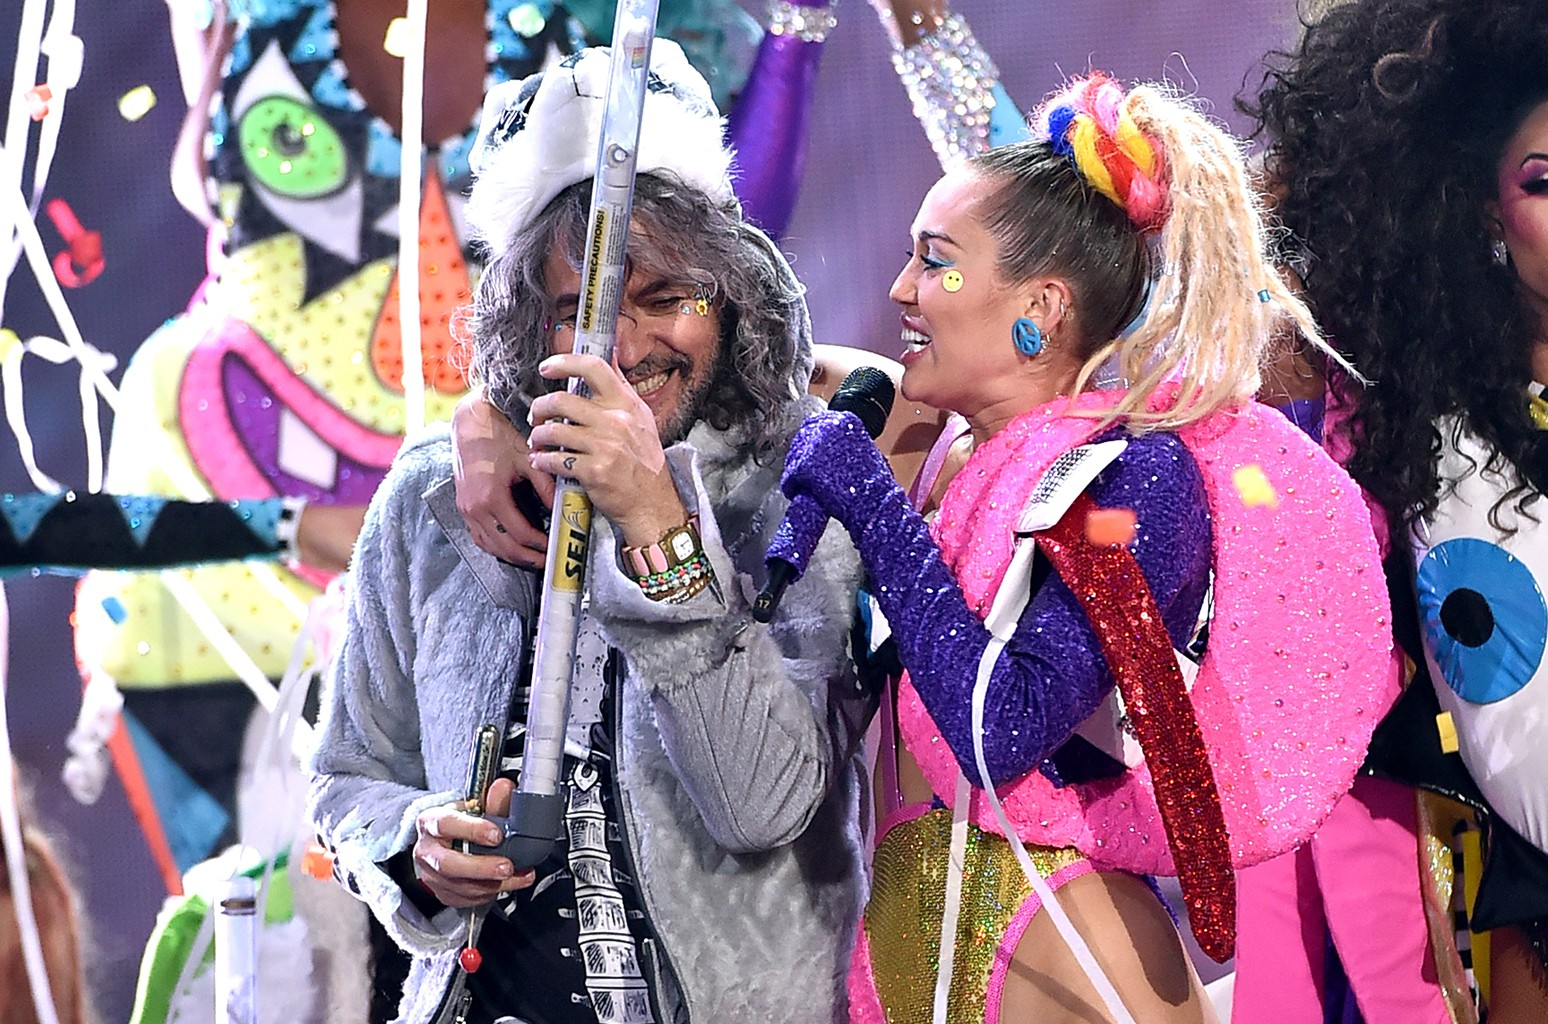 The Flaming Lips and Miley Cyrus